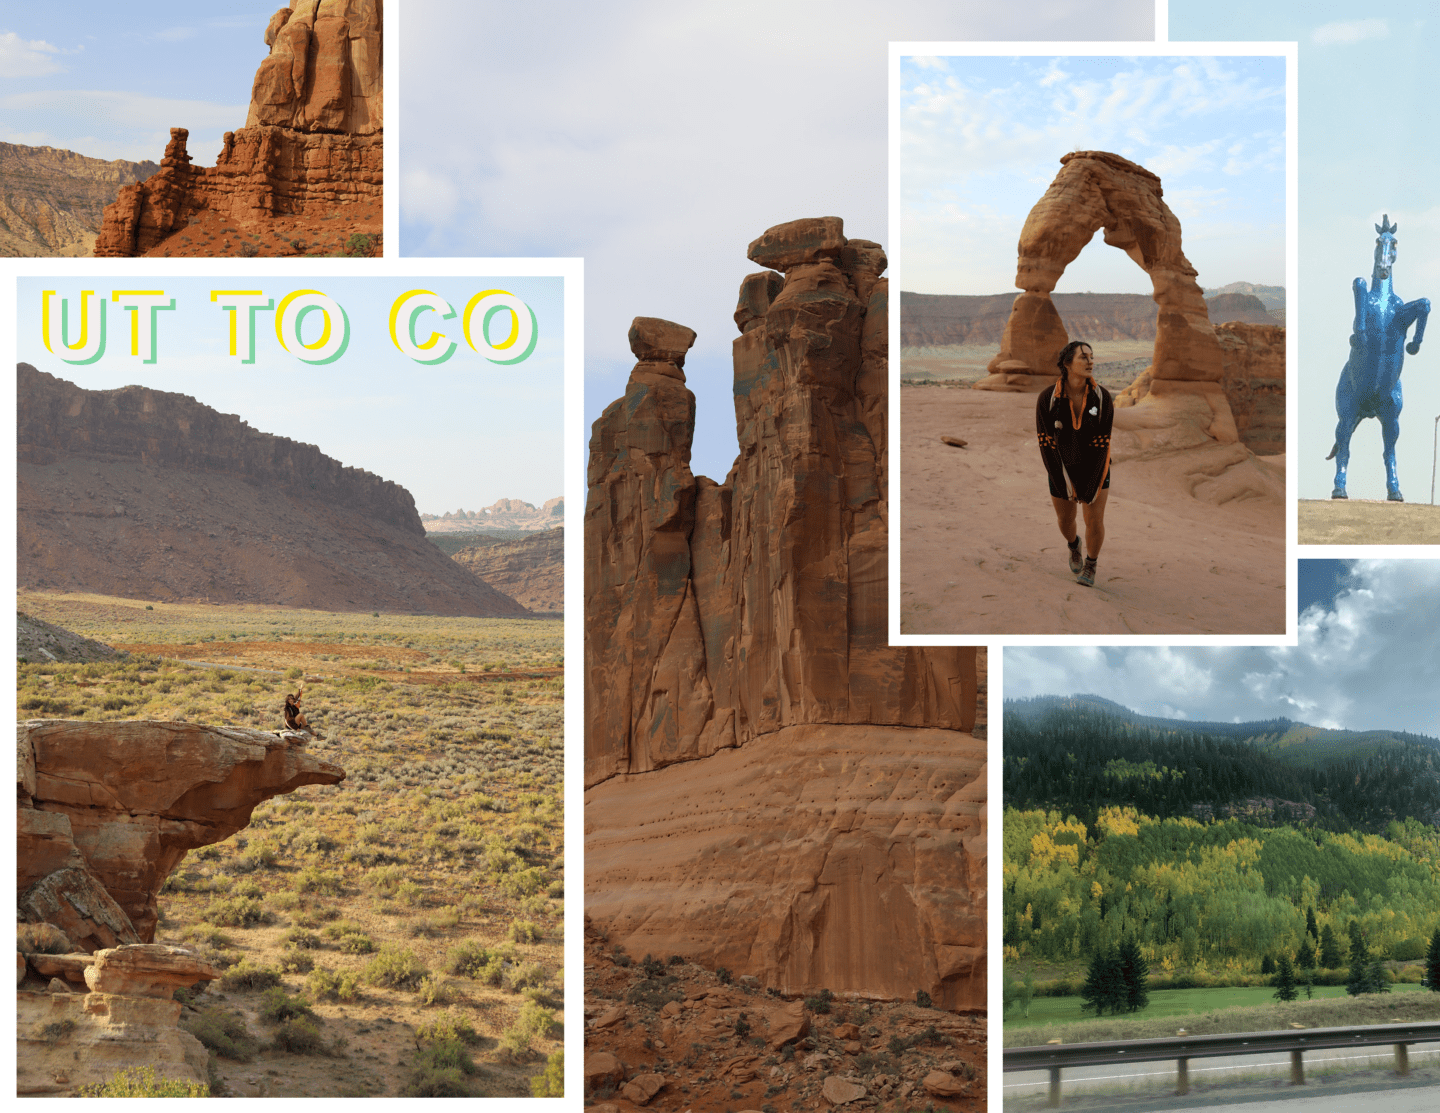 layne fable, WYOMING + UTAH ROAD TRIP ITINERARY  Moab Arches National Park